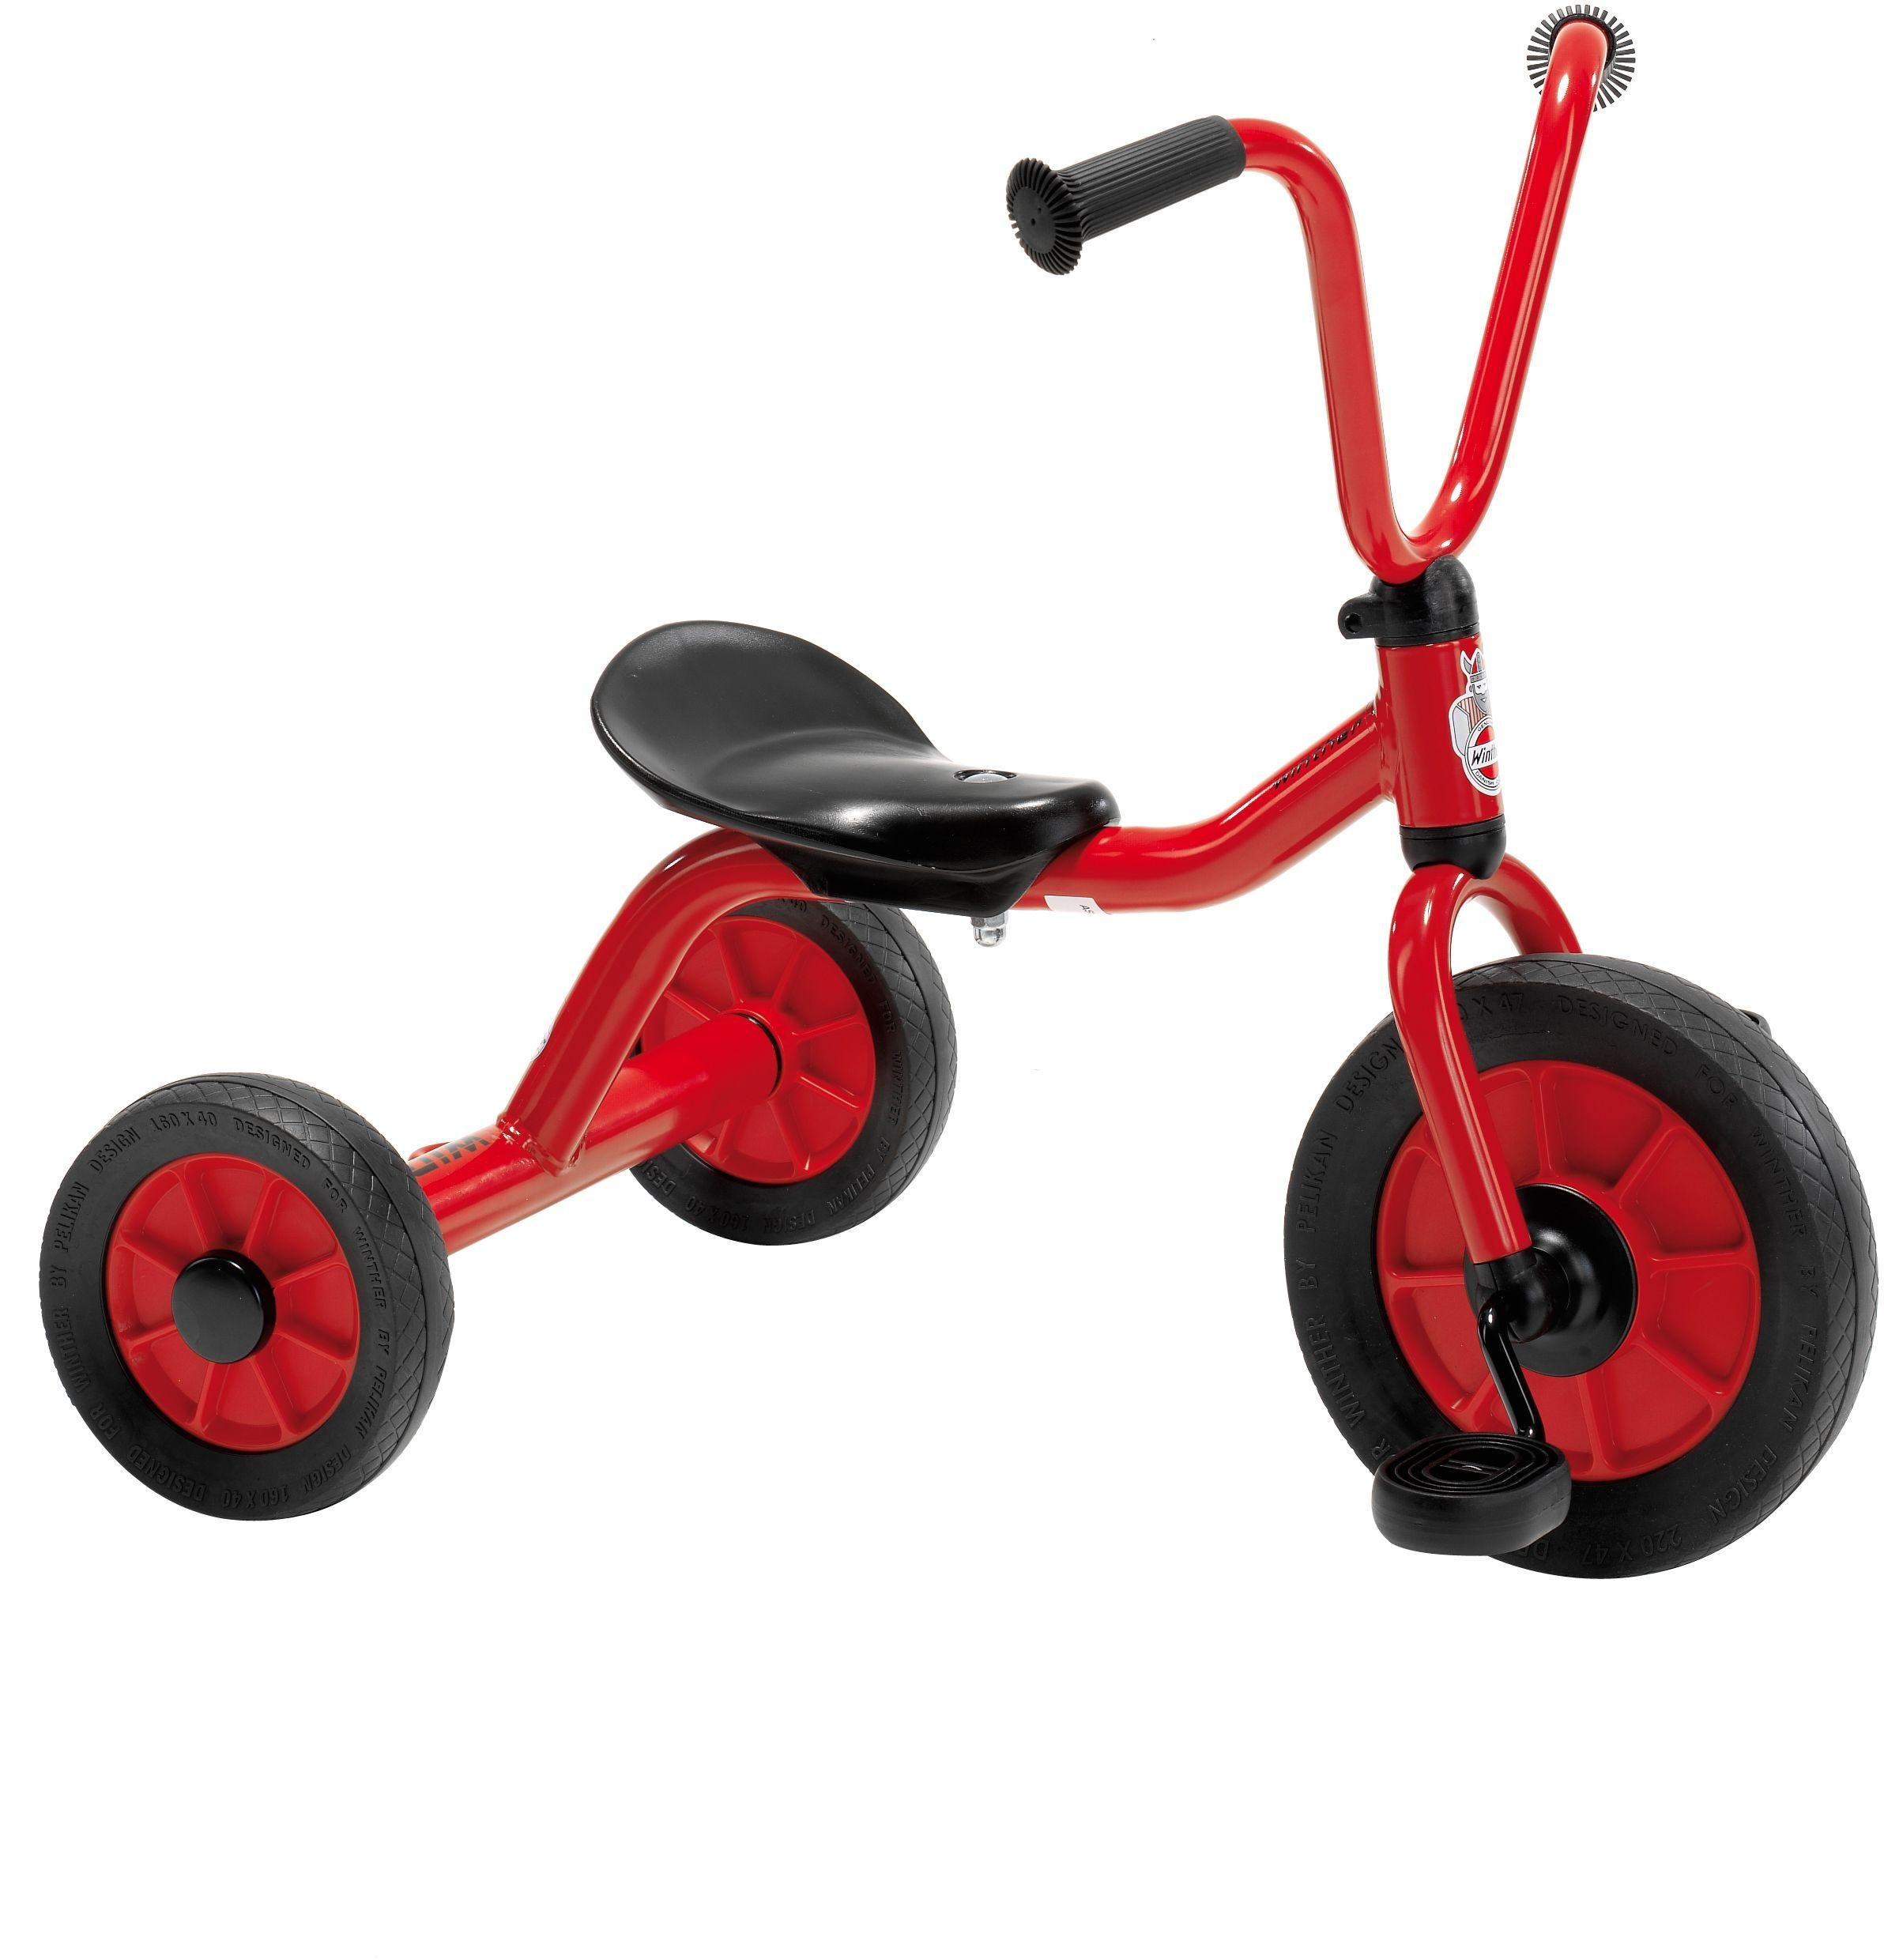 Winther Mini Viking Low Tricycle   Red.